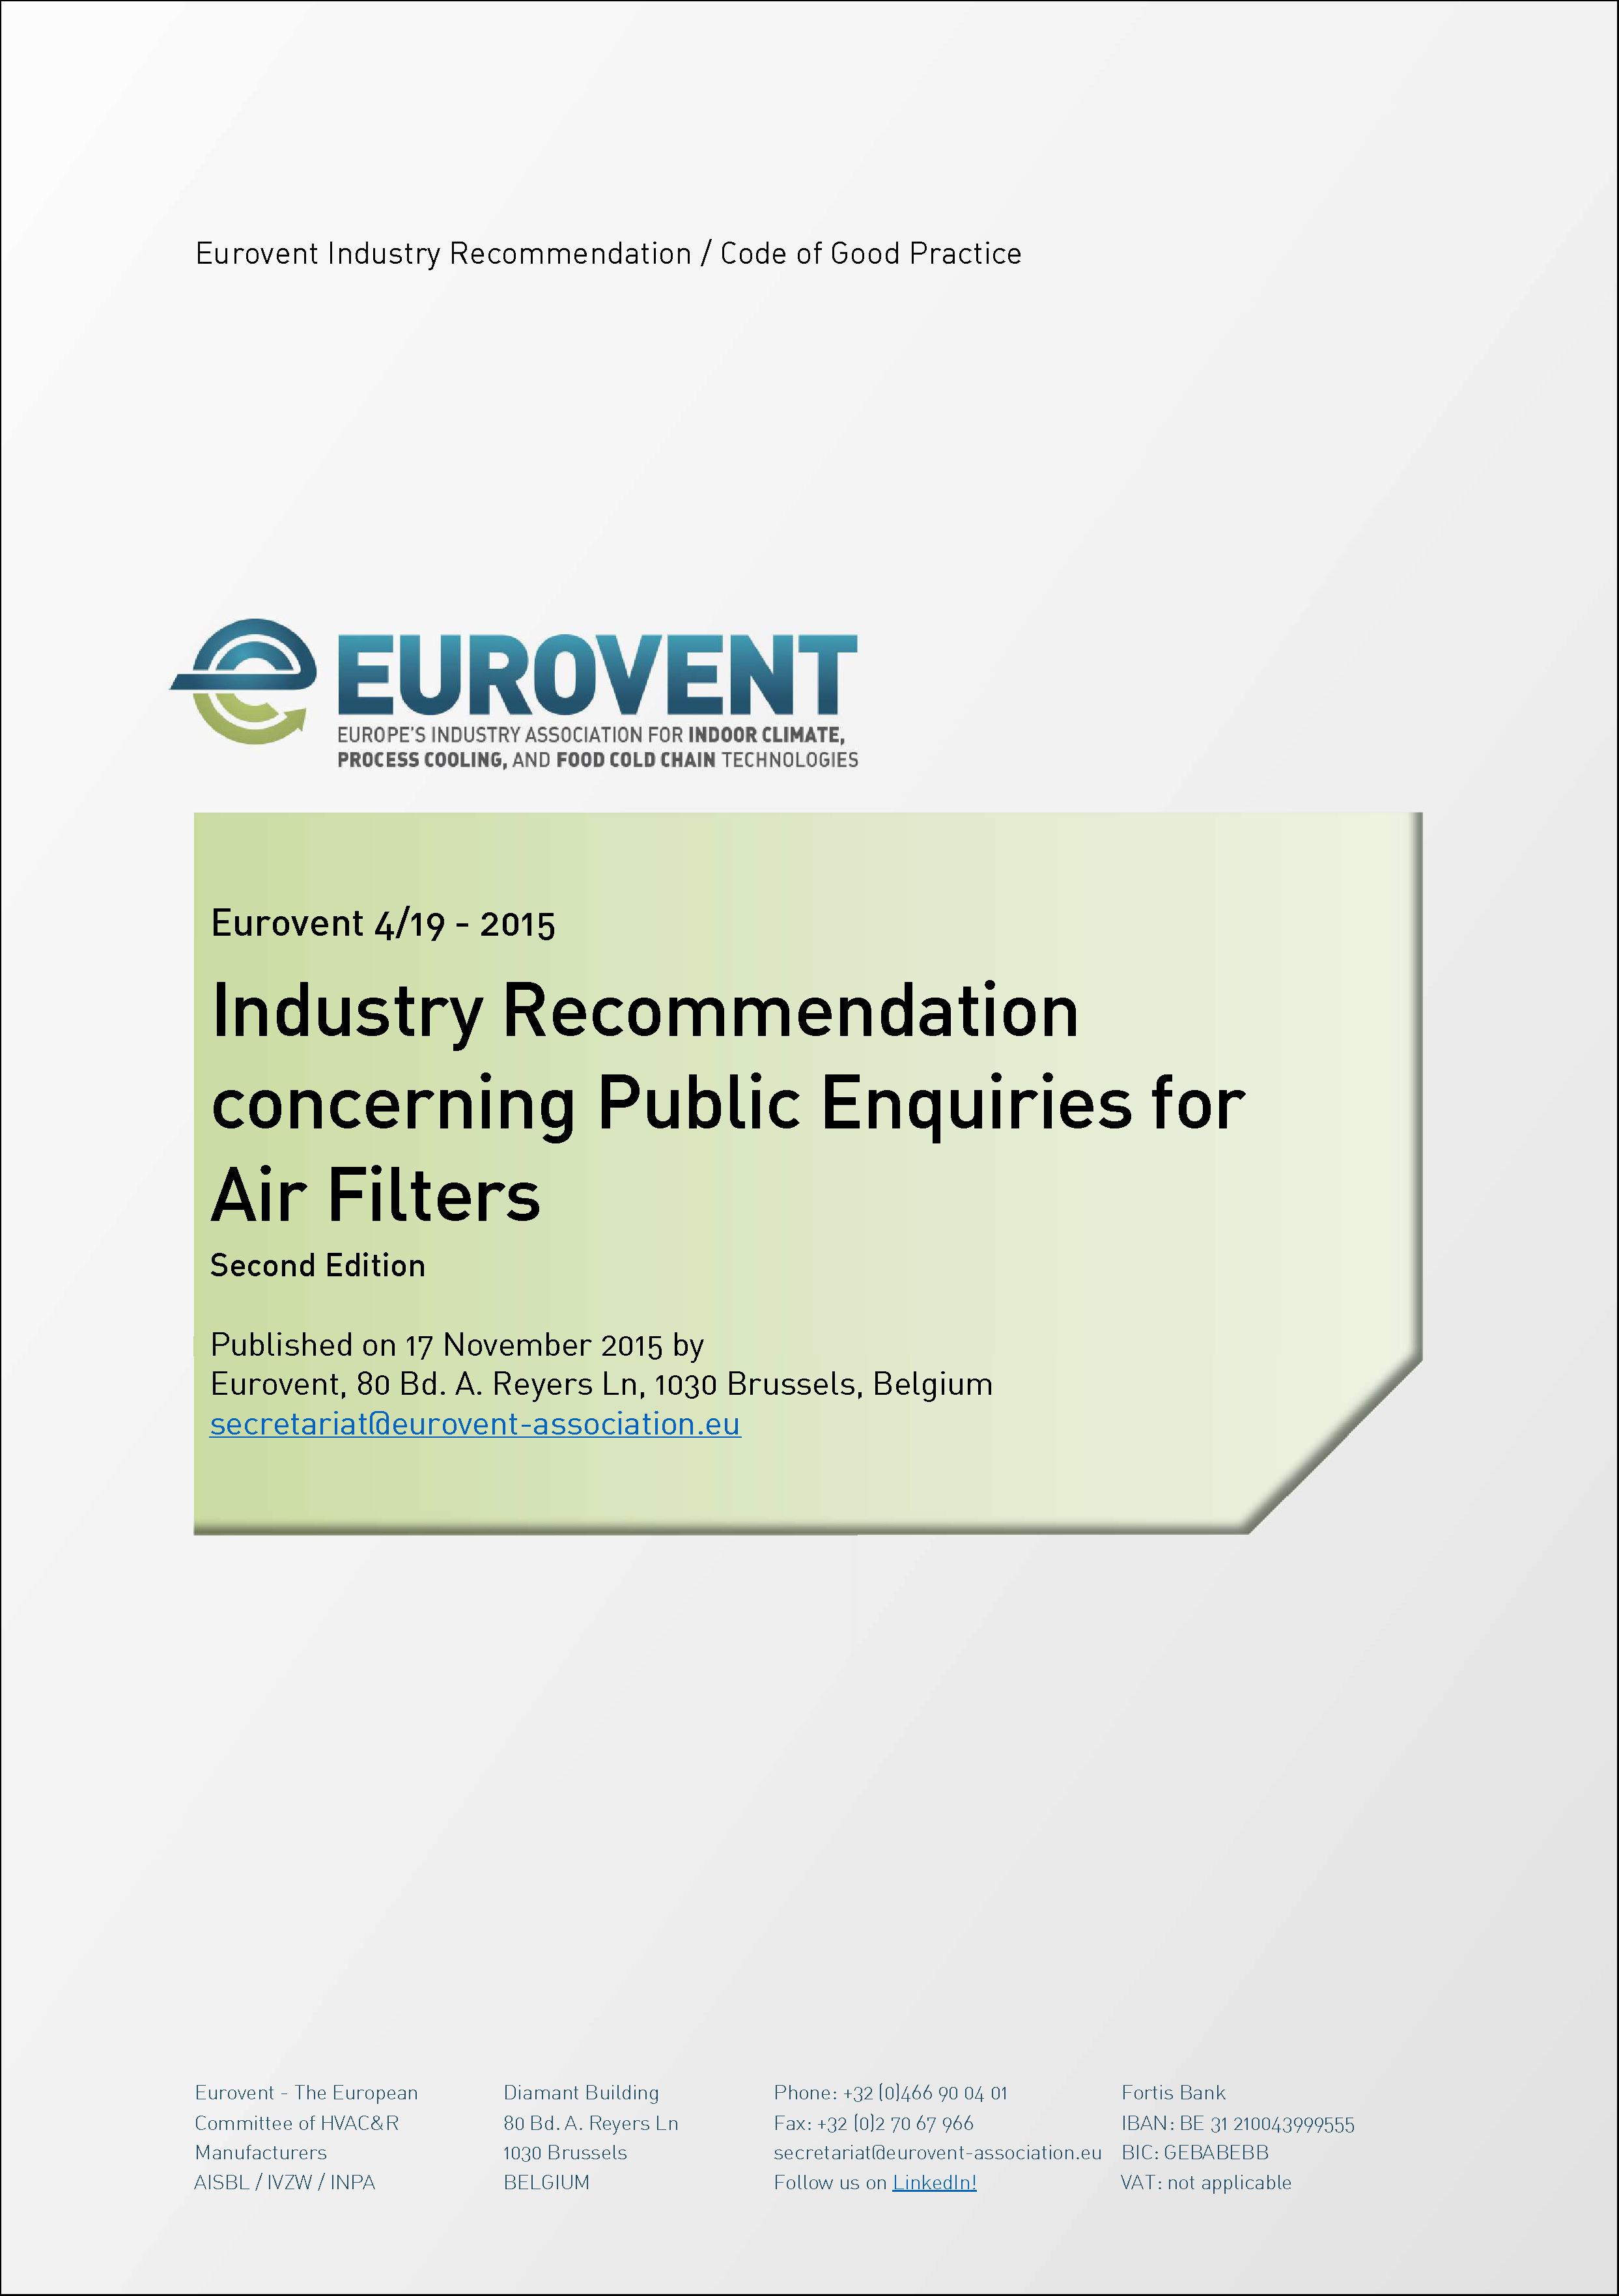 2015 - Updated Industry Recommendation concerning Public Enquiries for Air Filters